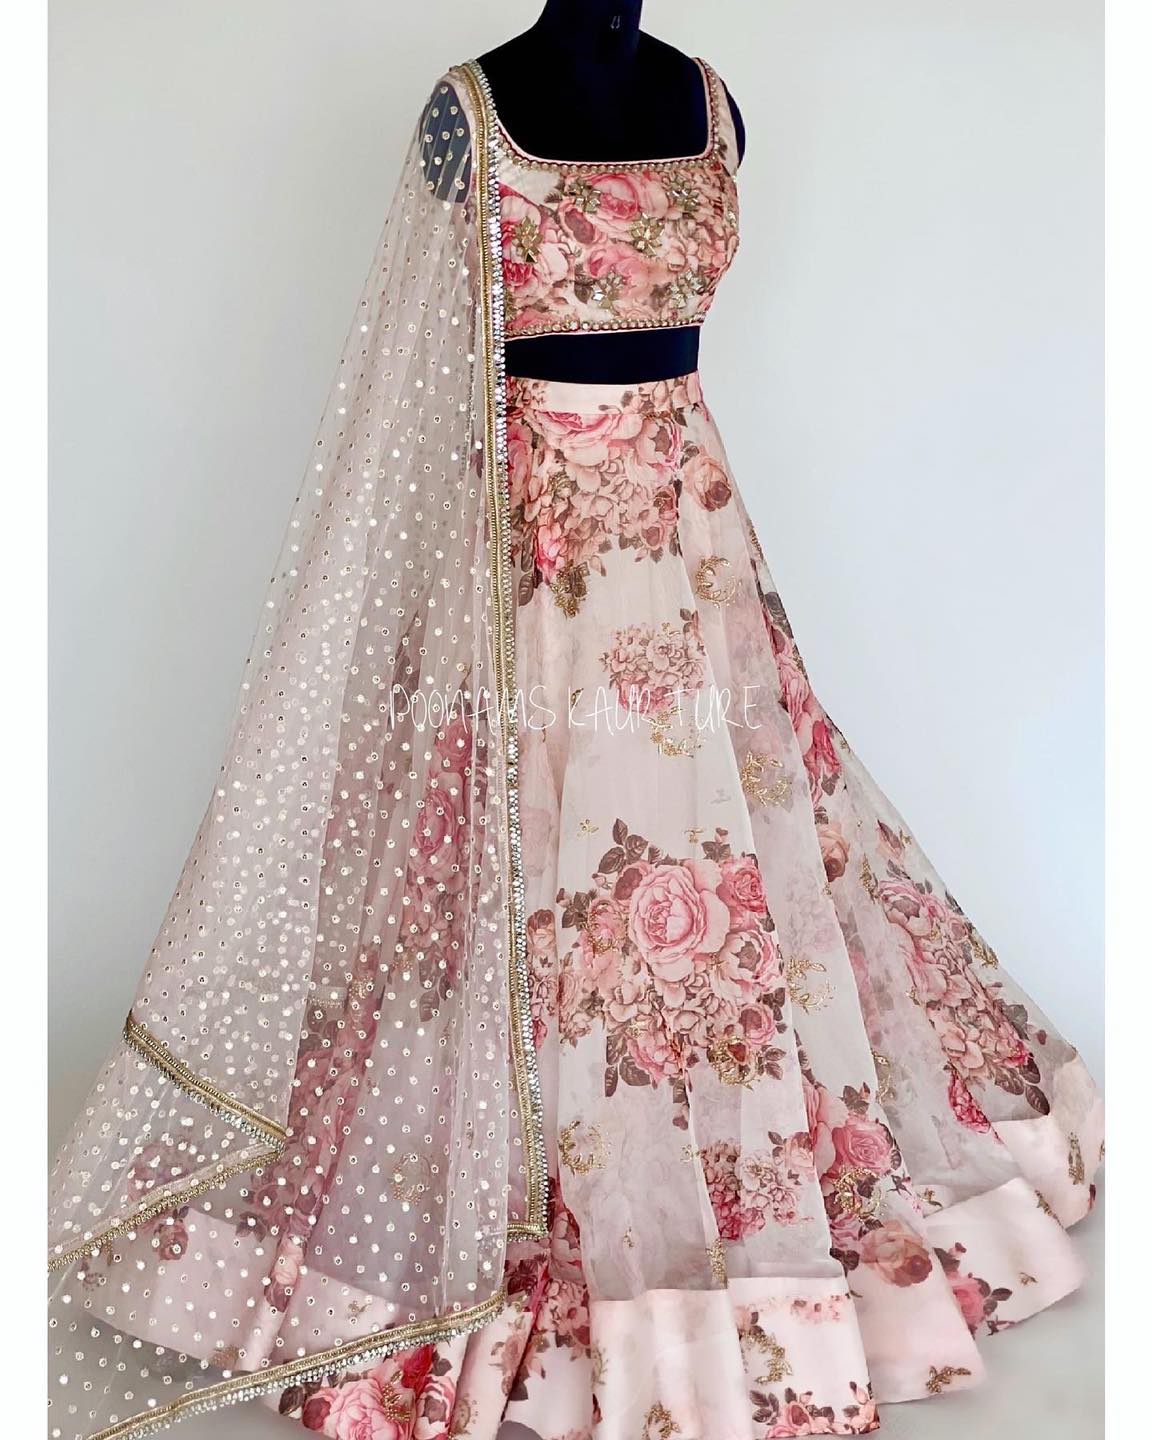 LA ROSA Outfit details -  Blouse - organza with mirror hand embroidery  Lehnga - Soft organza  Duppatta- sequins on net with mirror border . Neckline depths blouse length sleeves length etc is made to the measurements you want.  2021-06-23